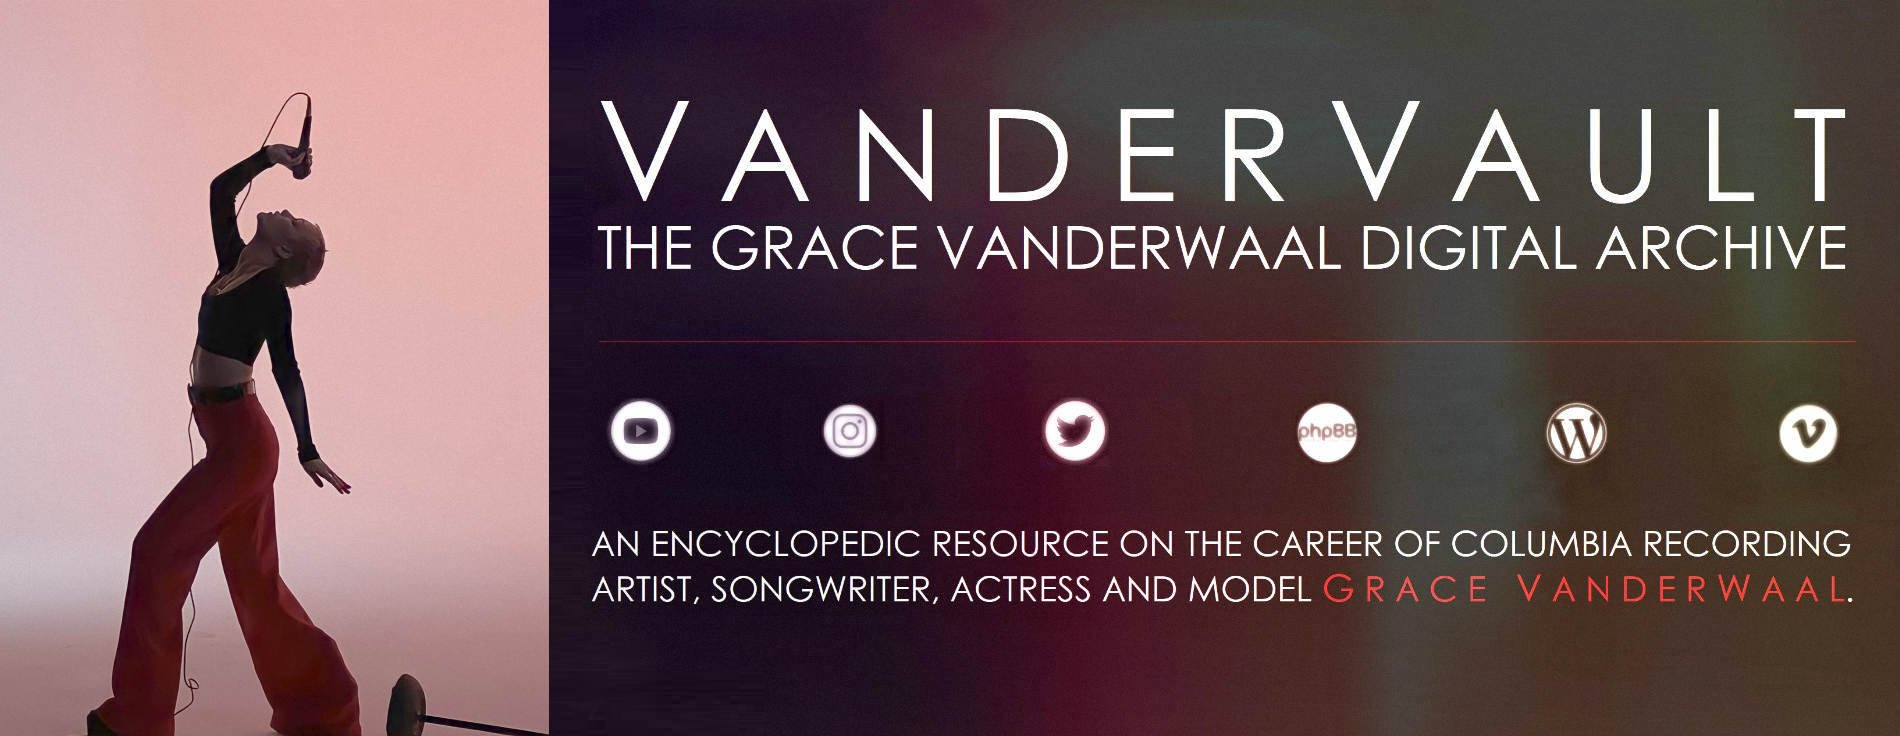 VanderVault: The Grace VanderWaal Digital Archive